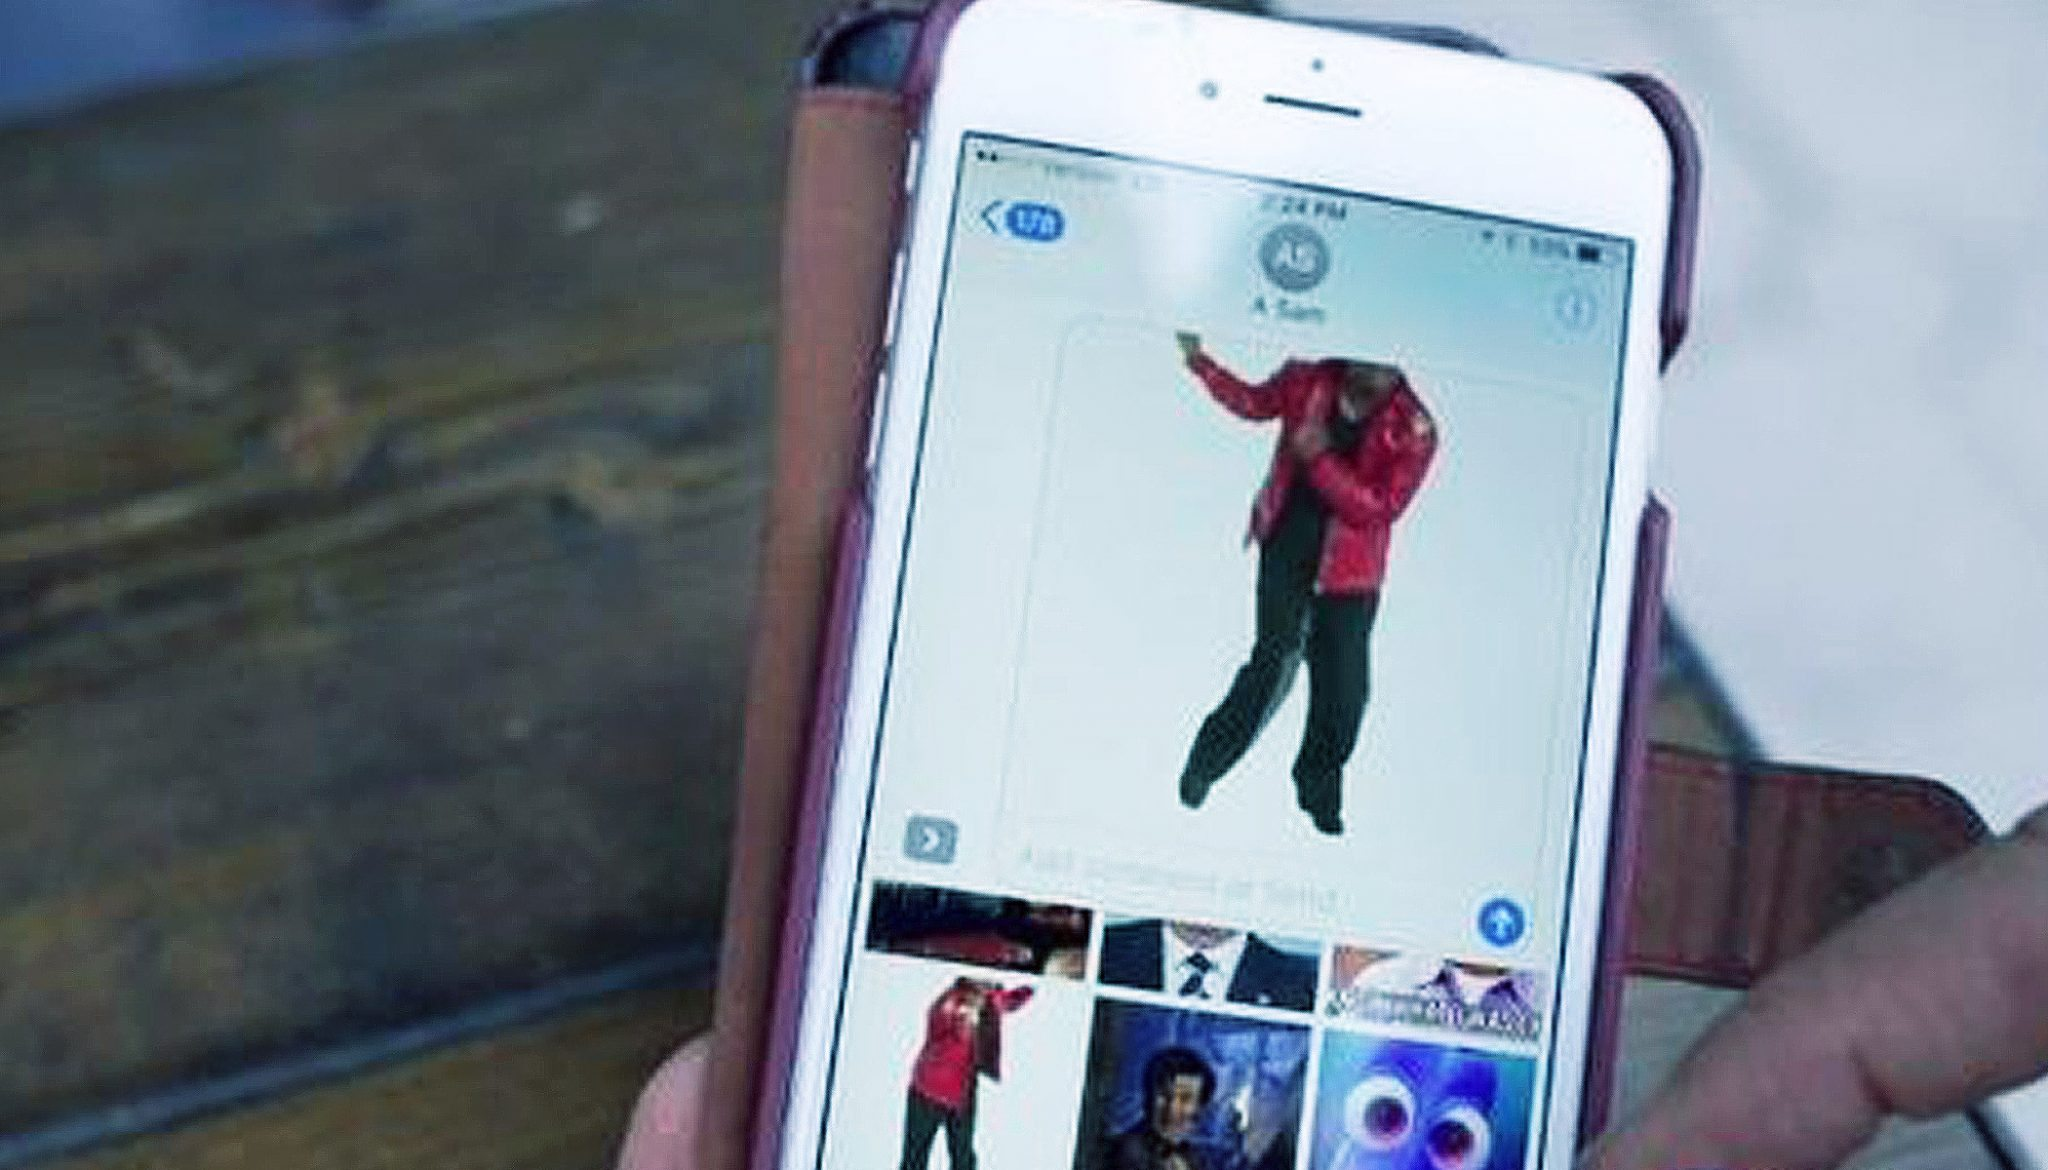 Apple Accidentally Releases Hardcore Porn GIFs In iOS 10 iMessage